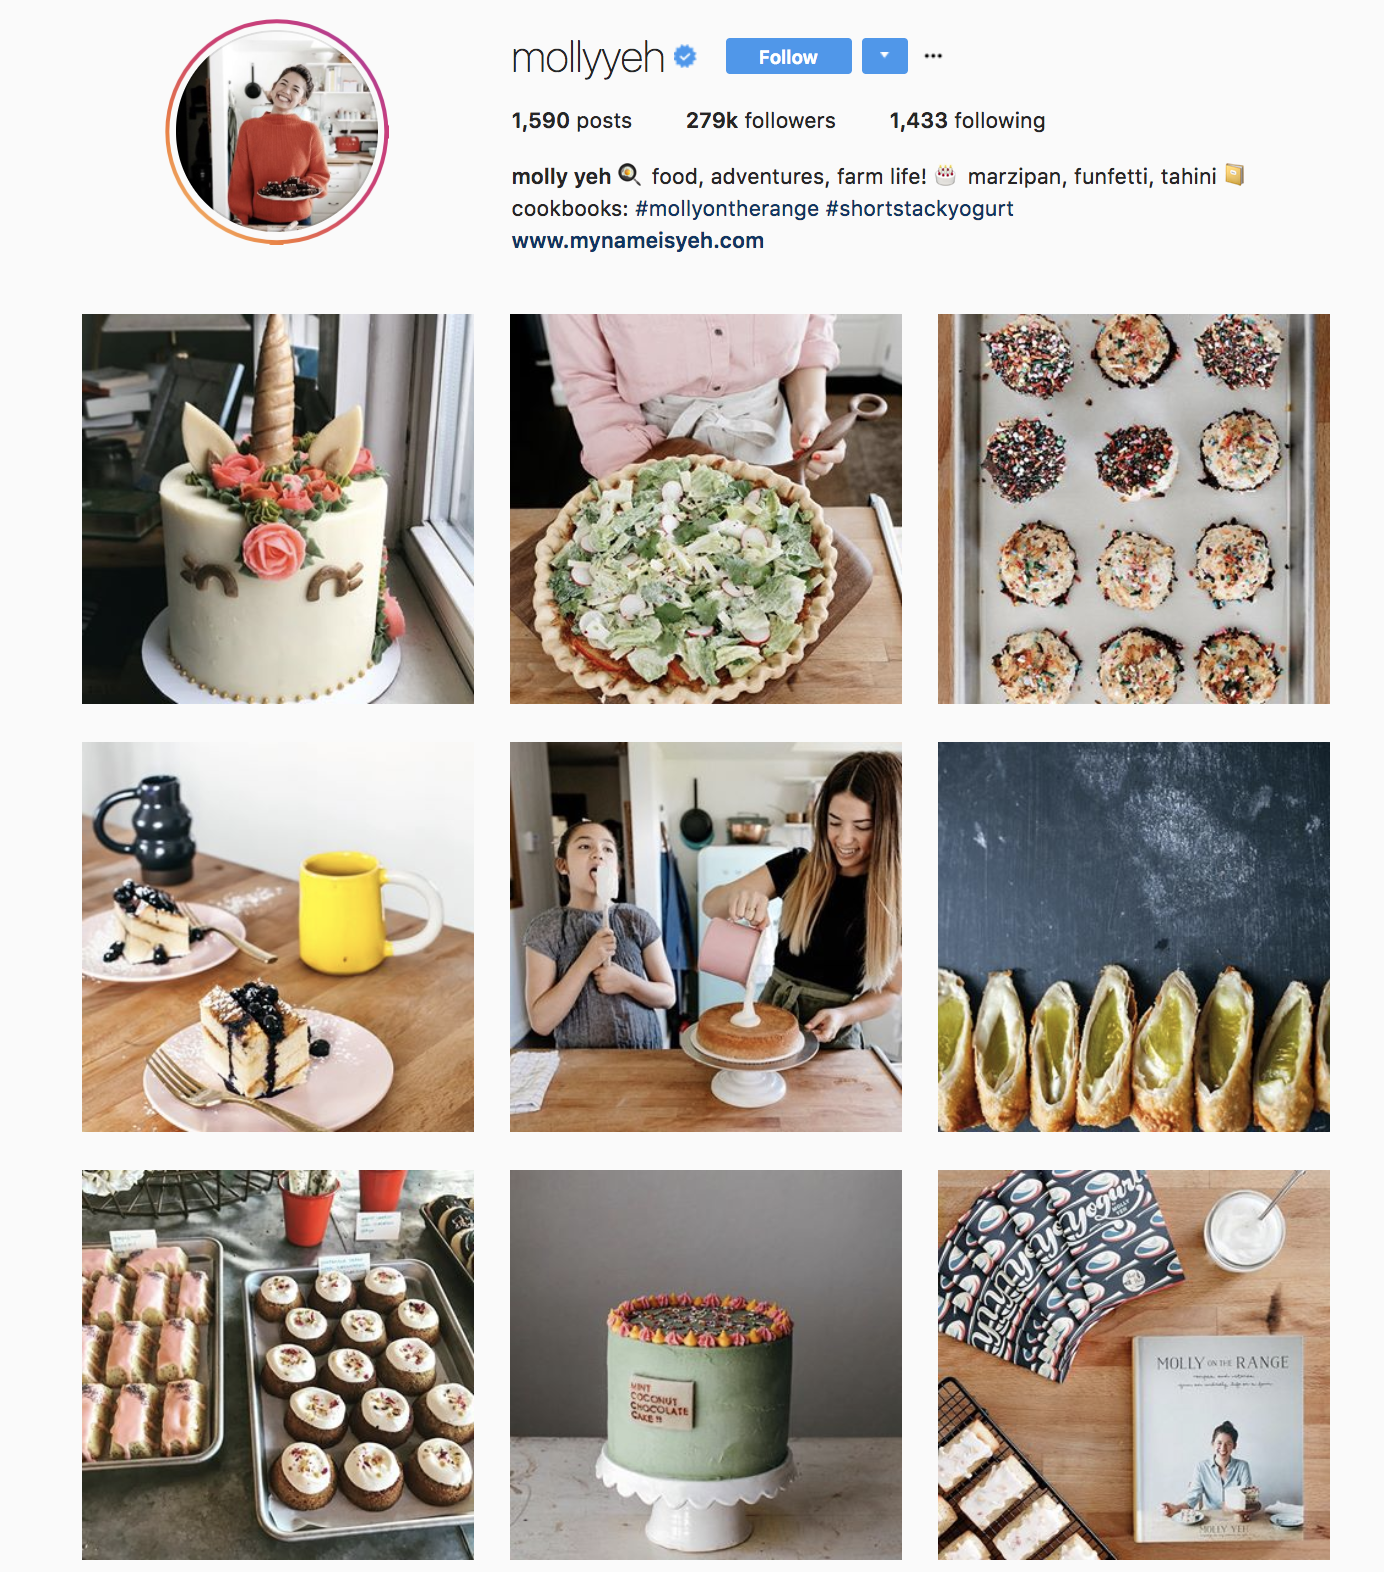 How to Become an Instagram Influencer the Right Way - Sked Social